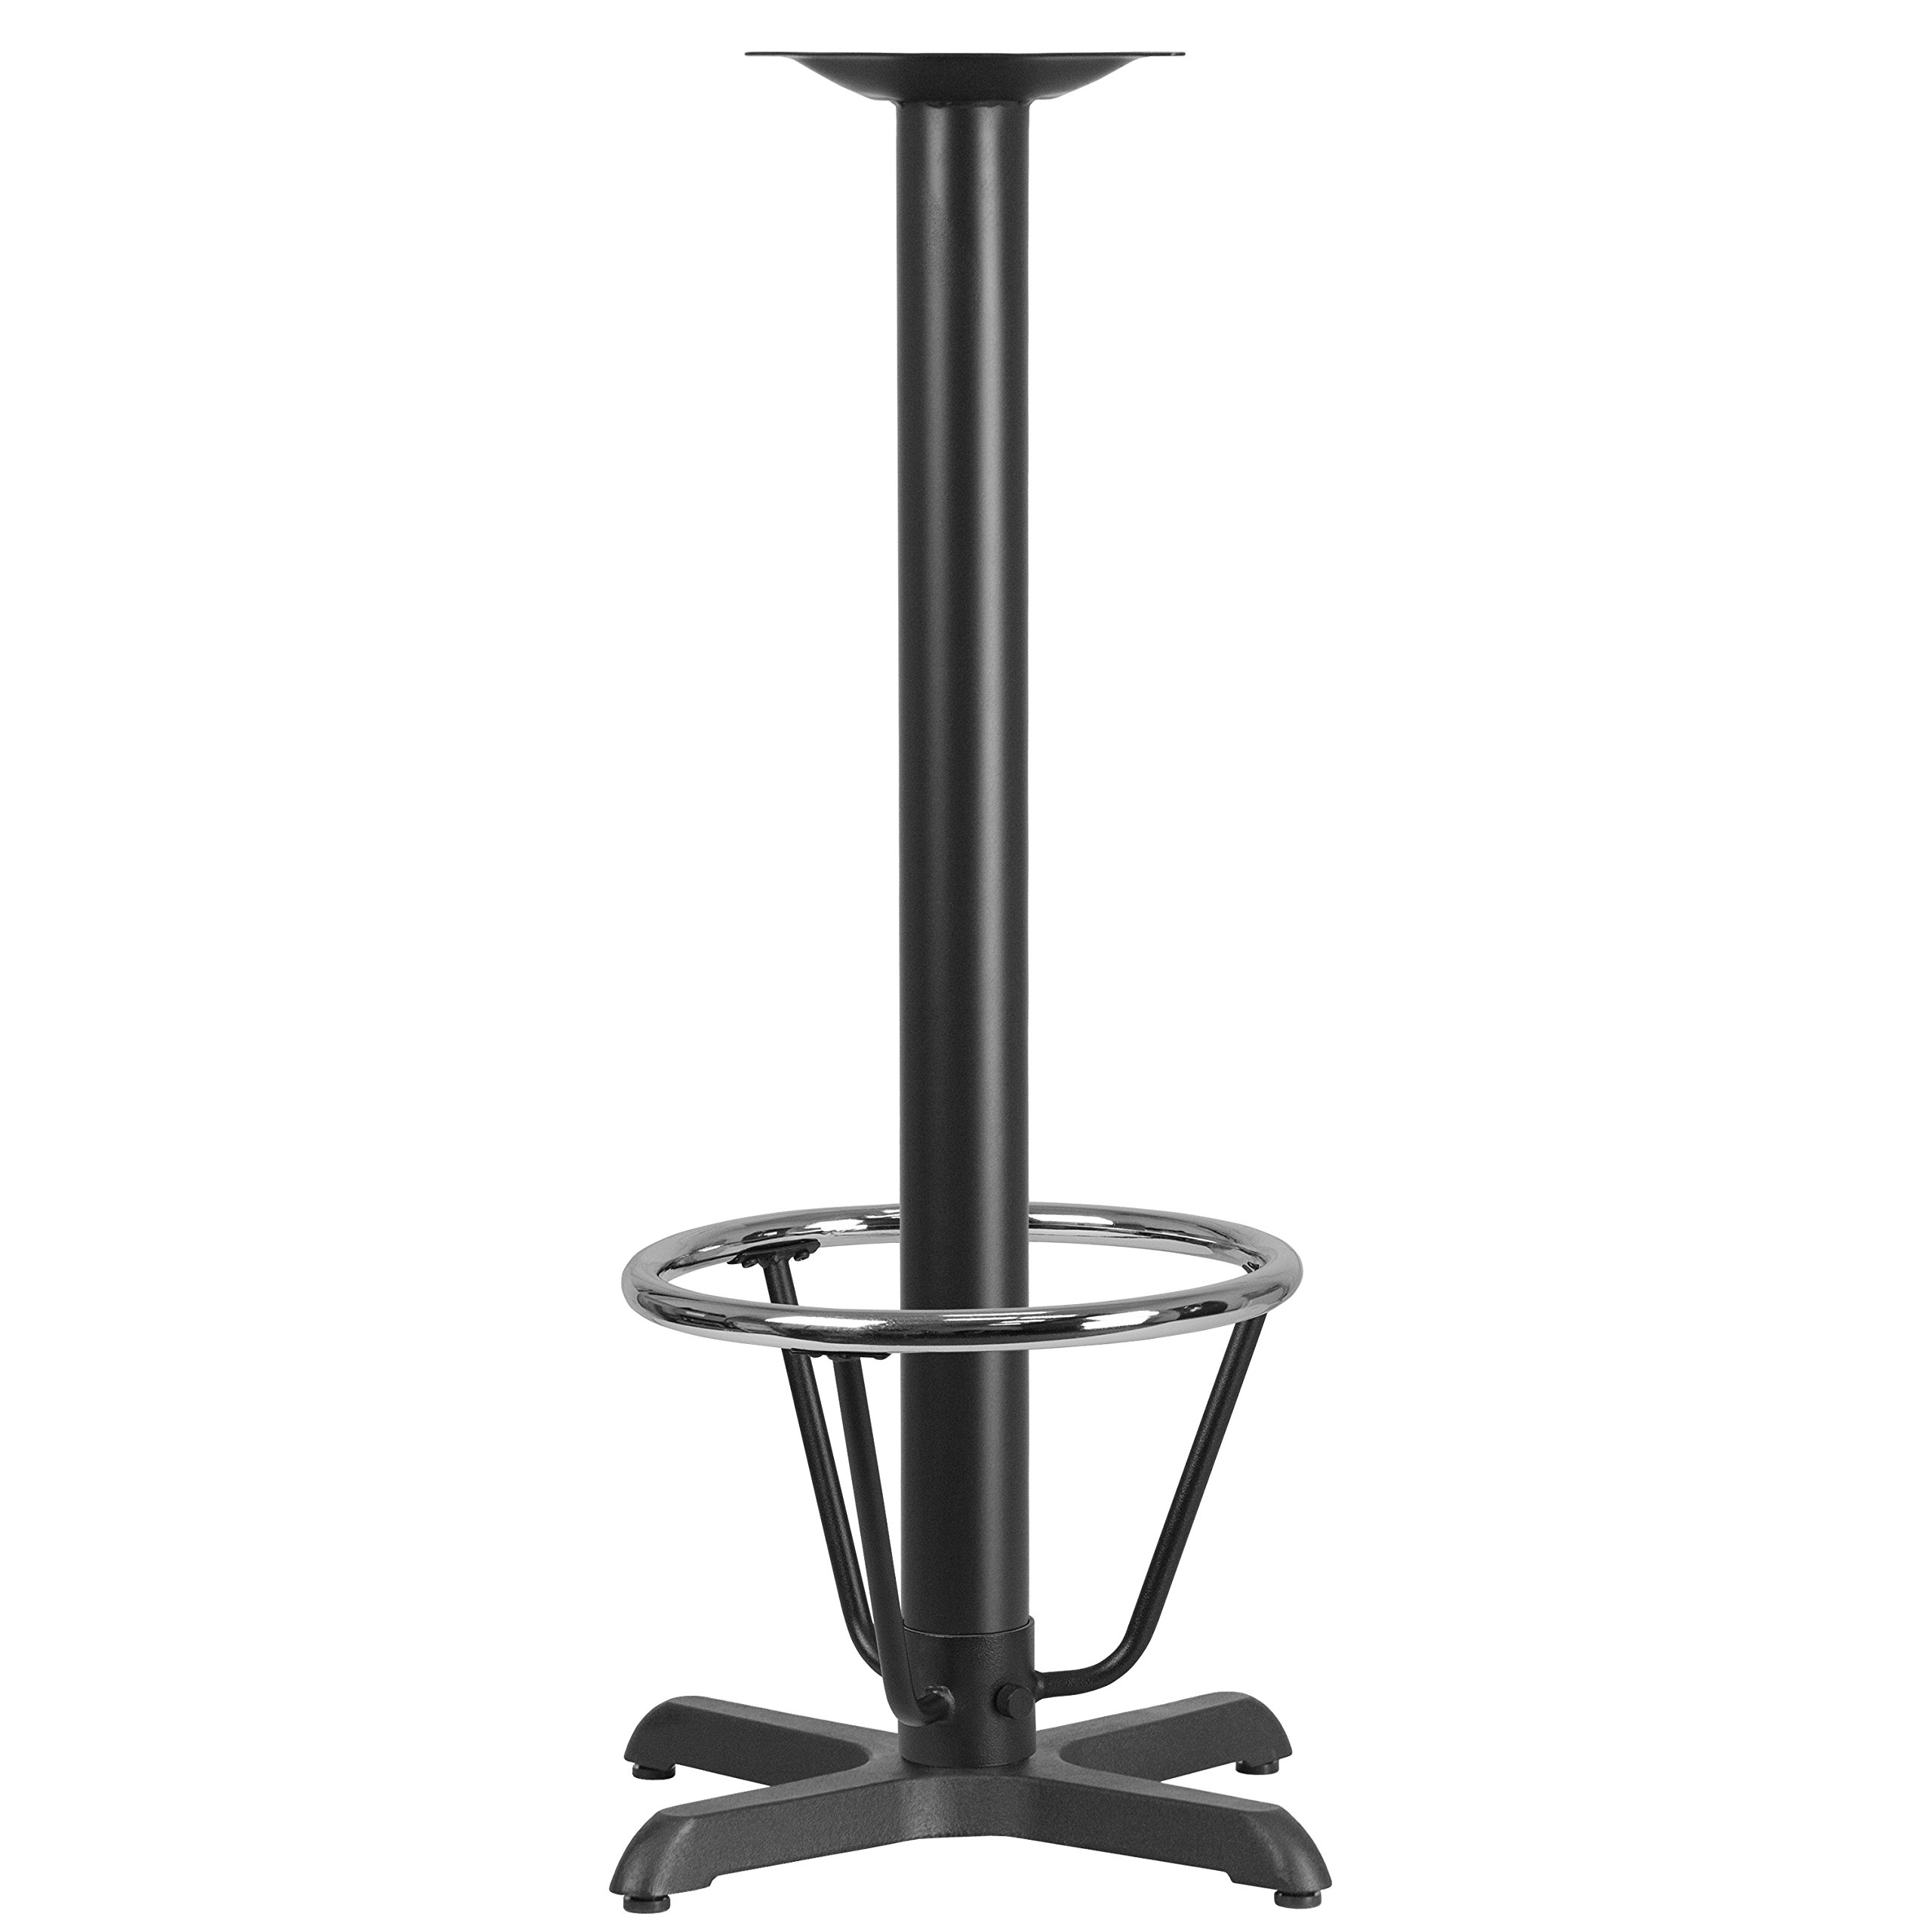 Flash Furniture 22'' x 22'' Restaurant Table X-Base with 3'' Dia. Bar Height Column and Foot Ring